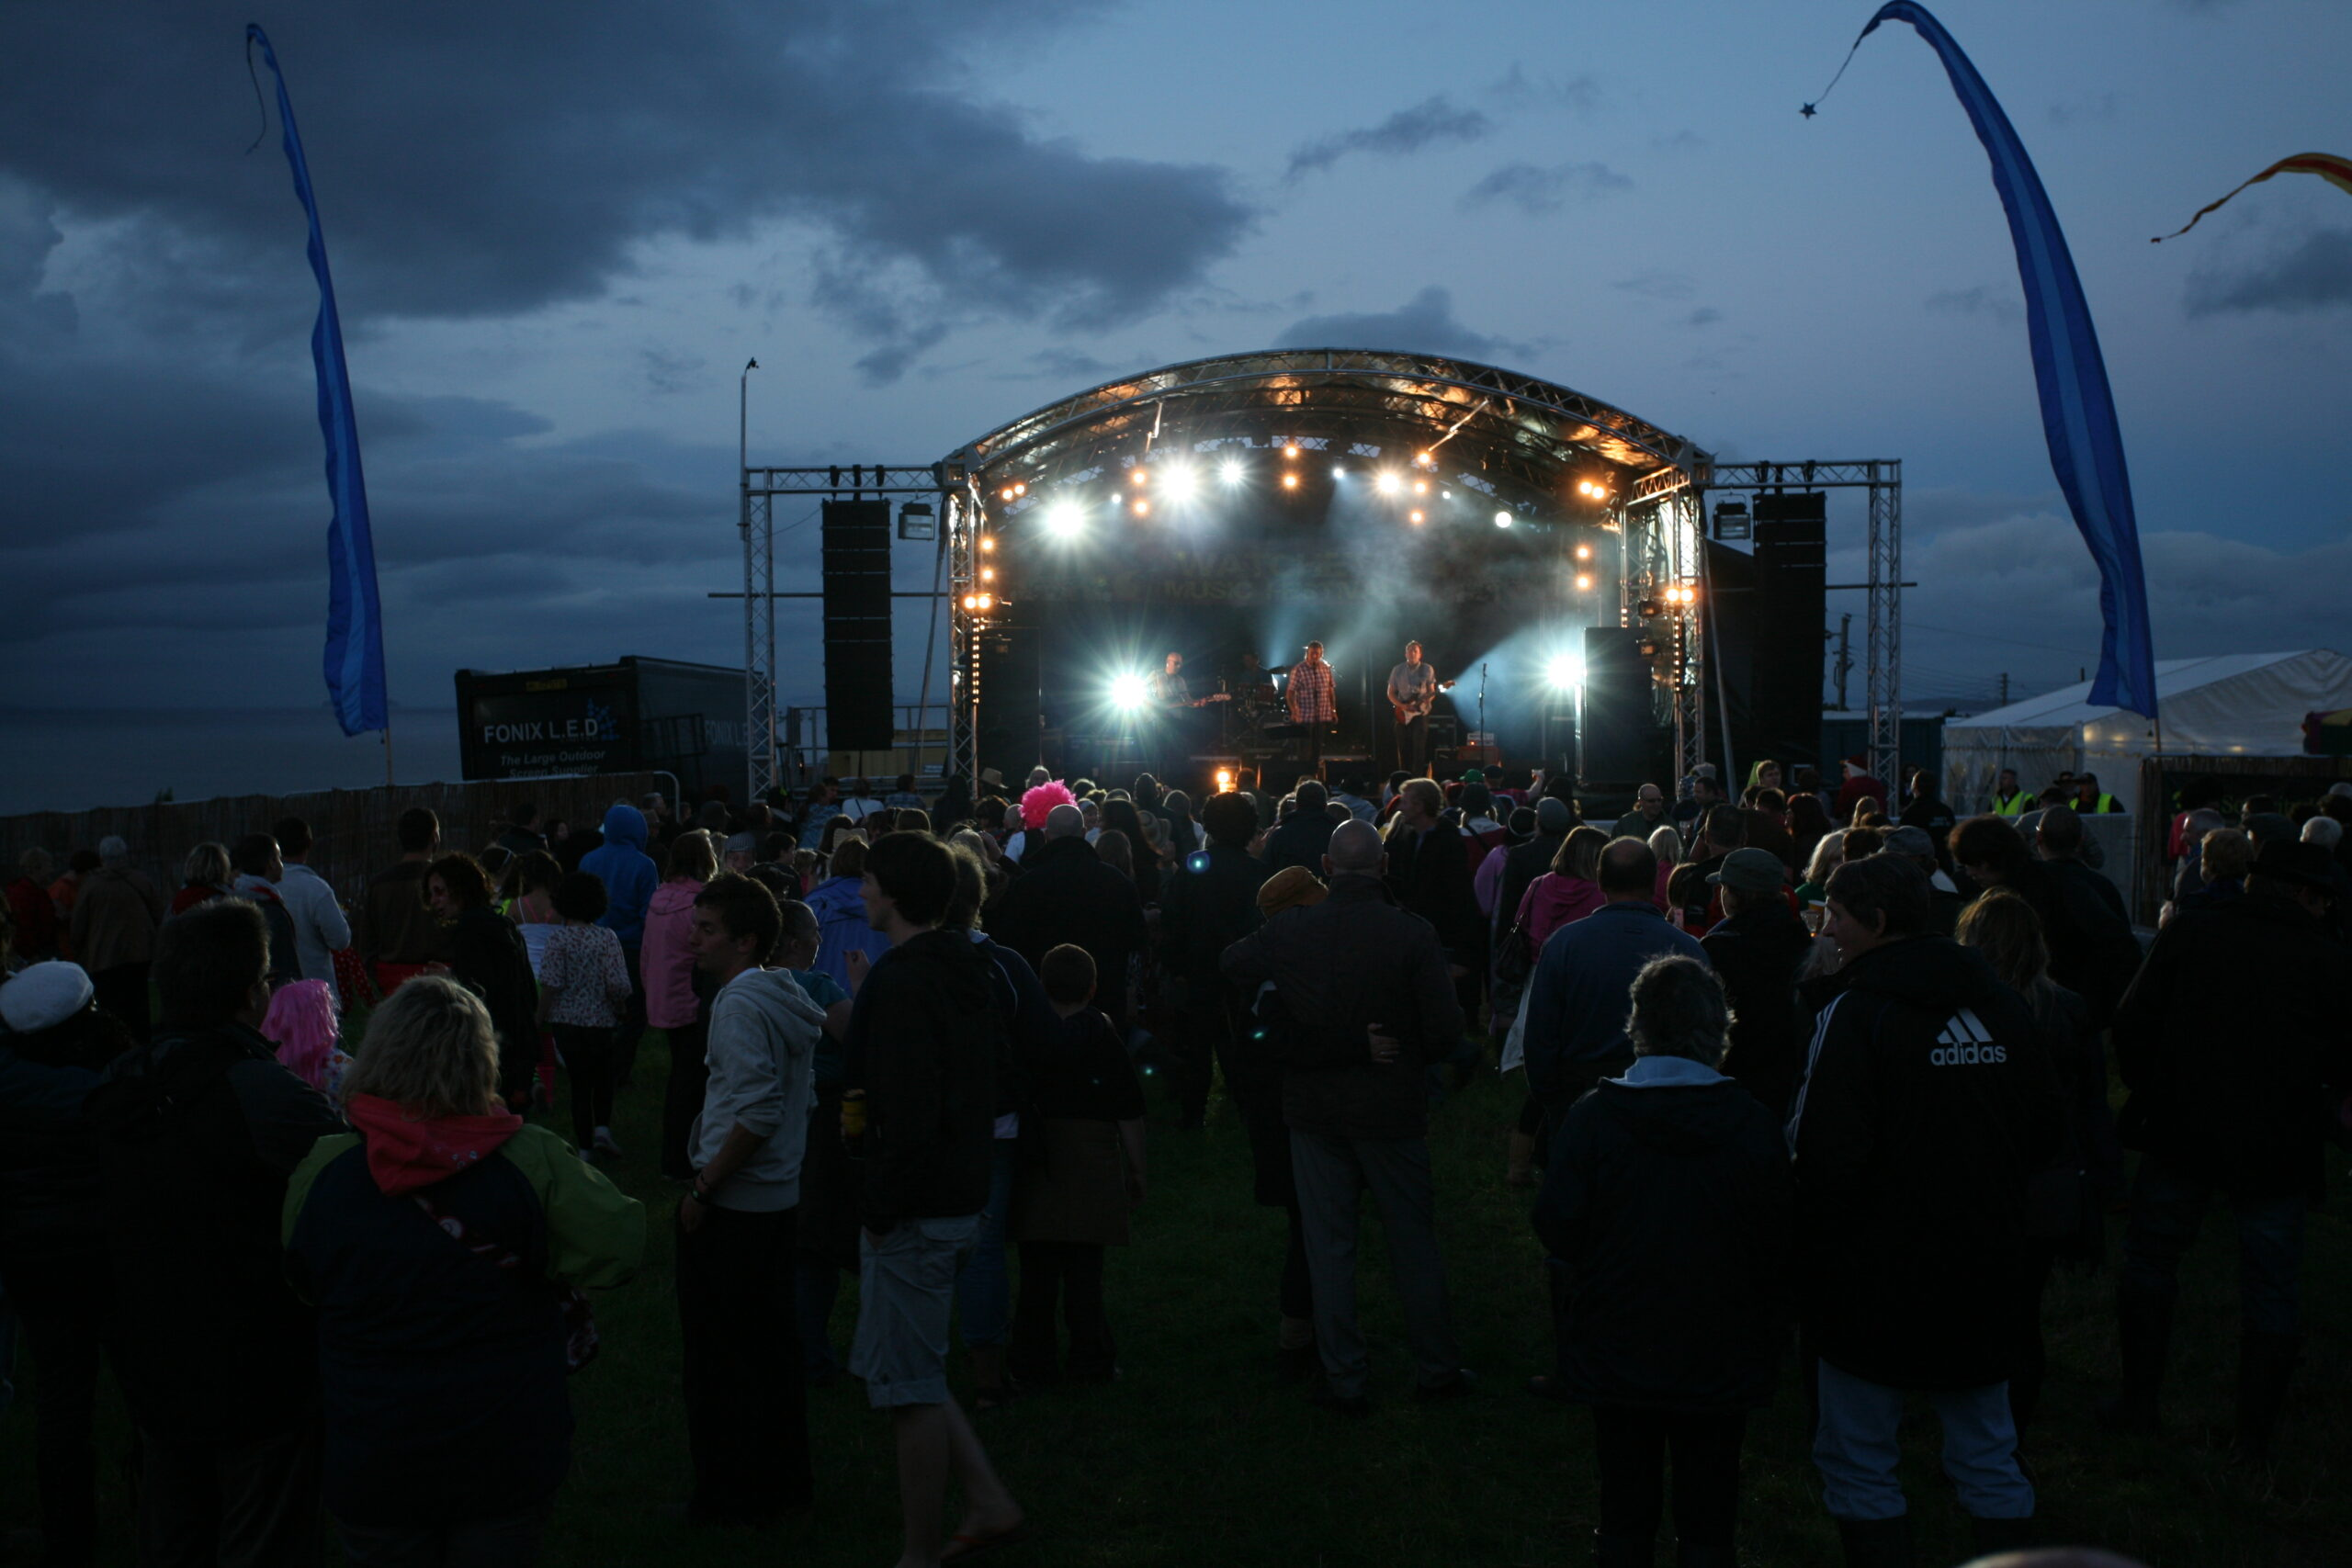 Watchet Festival receives £75k Culture Recovery Funding